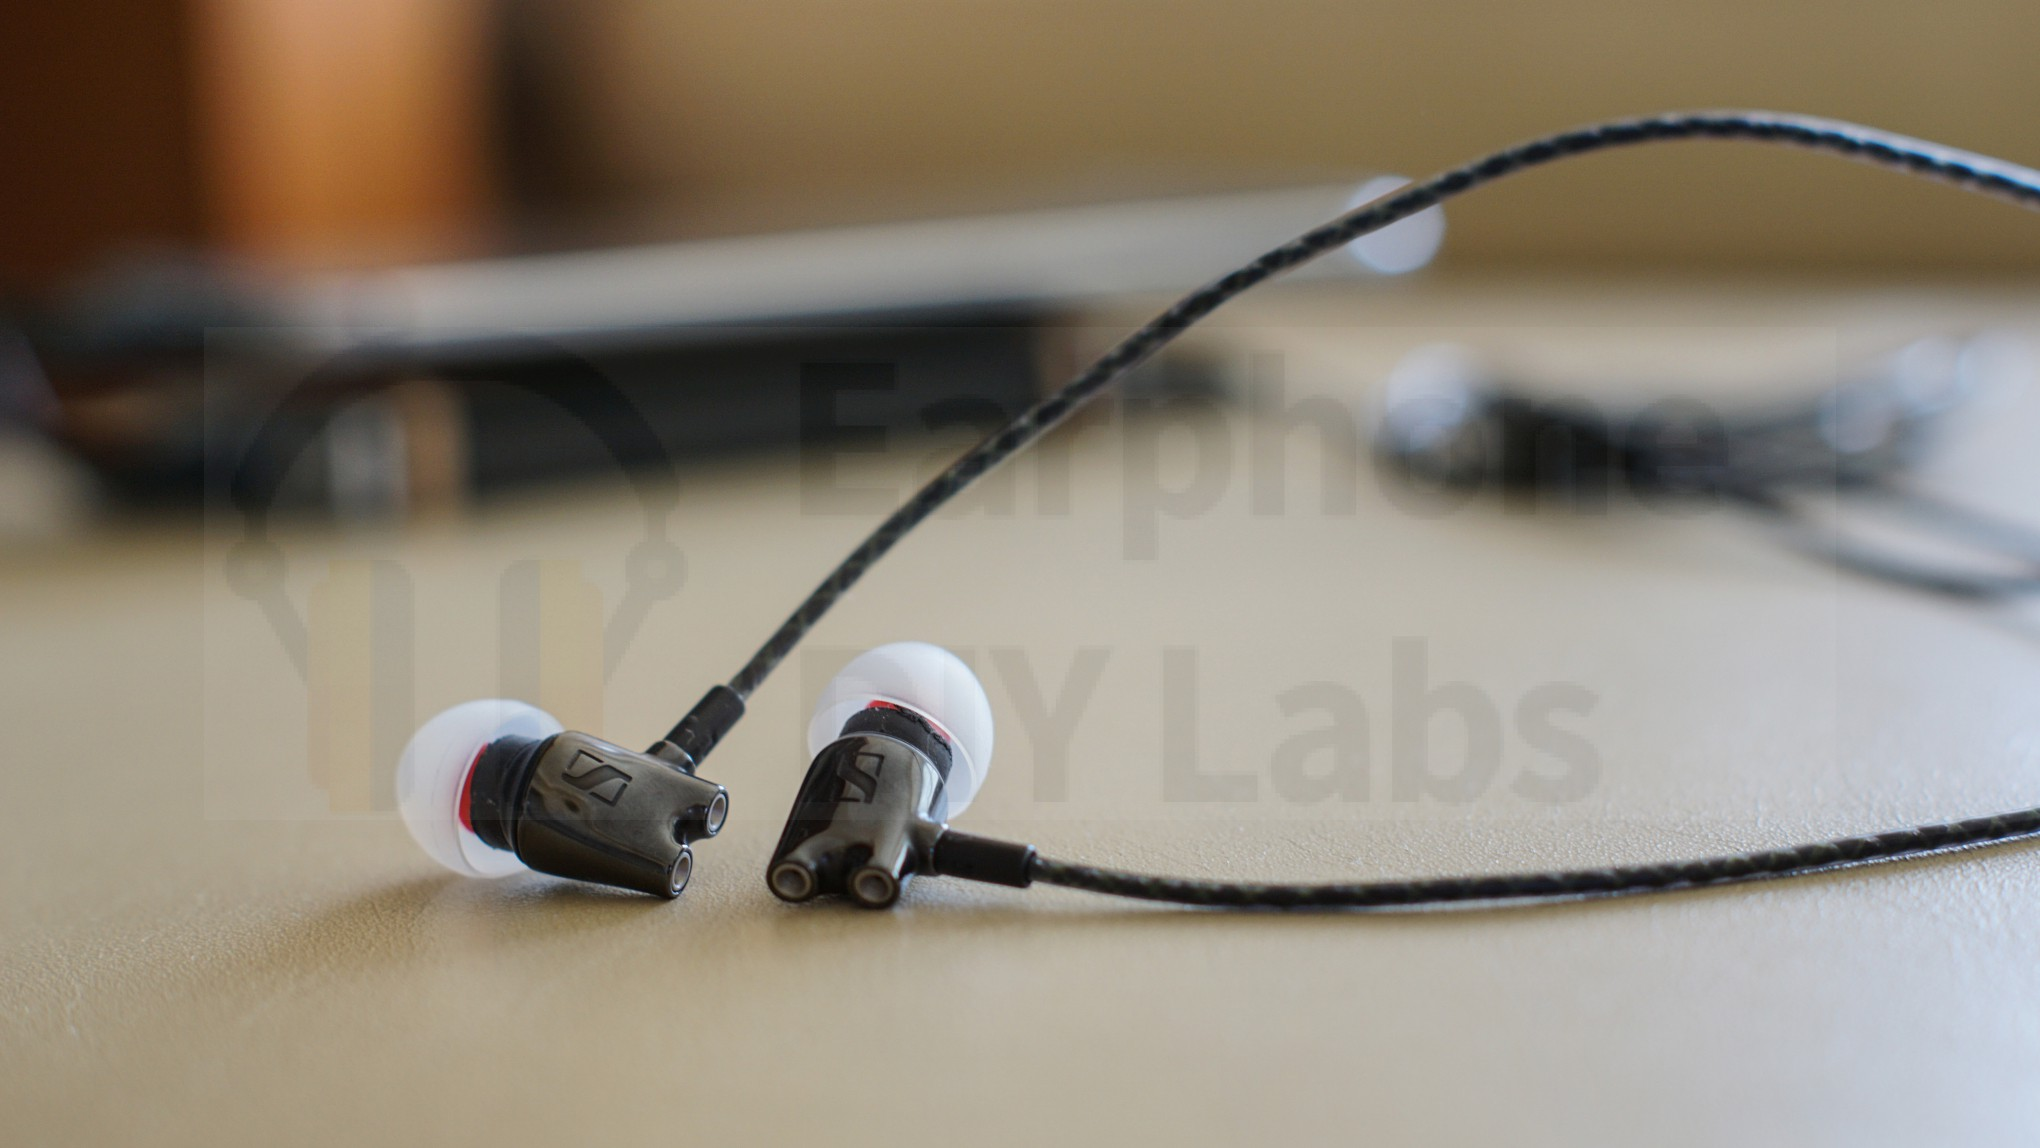 Sennheiser Ie800 Kit For Diy Beginners Earphone Labs Headphone Wiring Diagram If You Are An Guru With A Golden Ear We Encourage To Take Look At Our Elites Which Offers All The